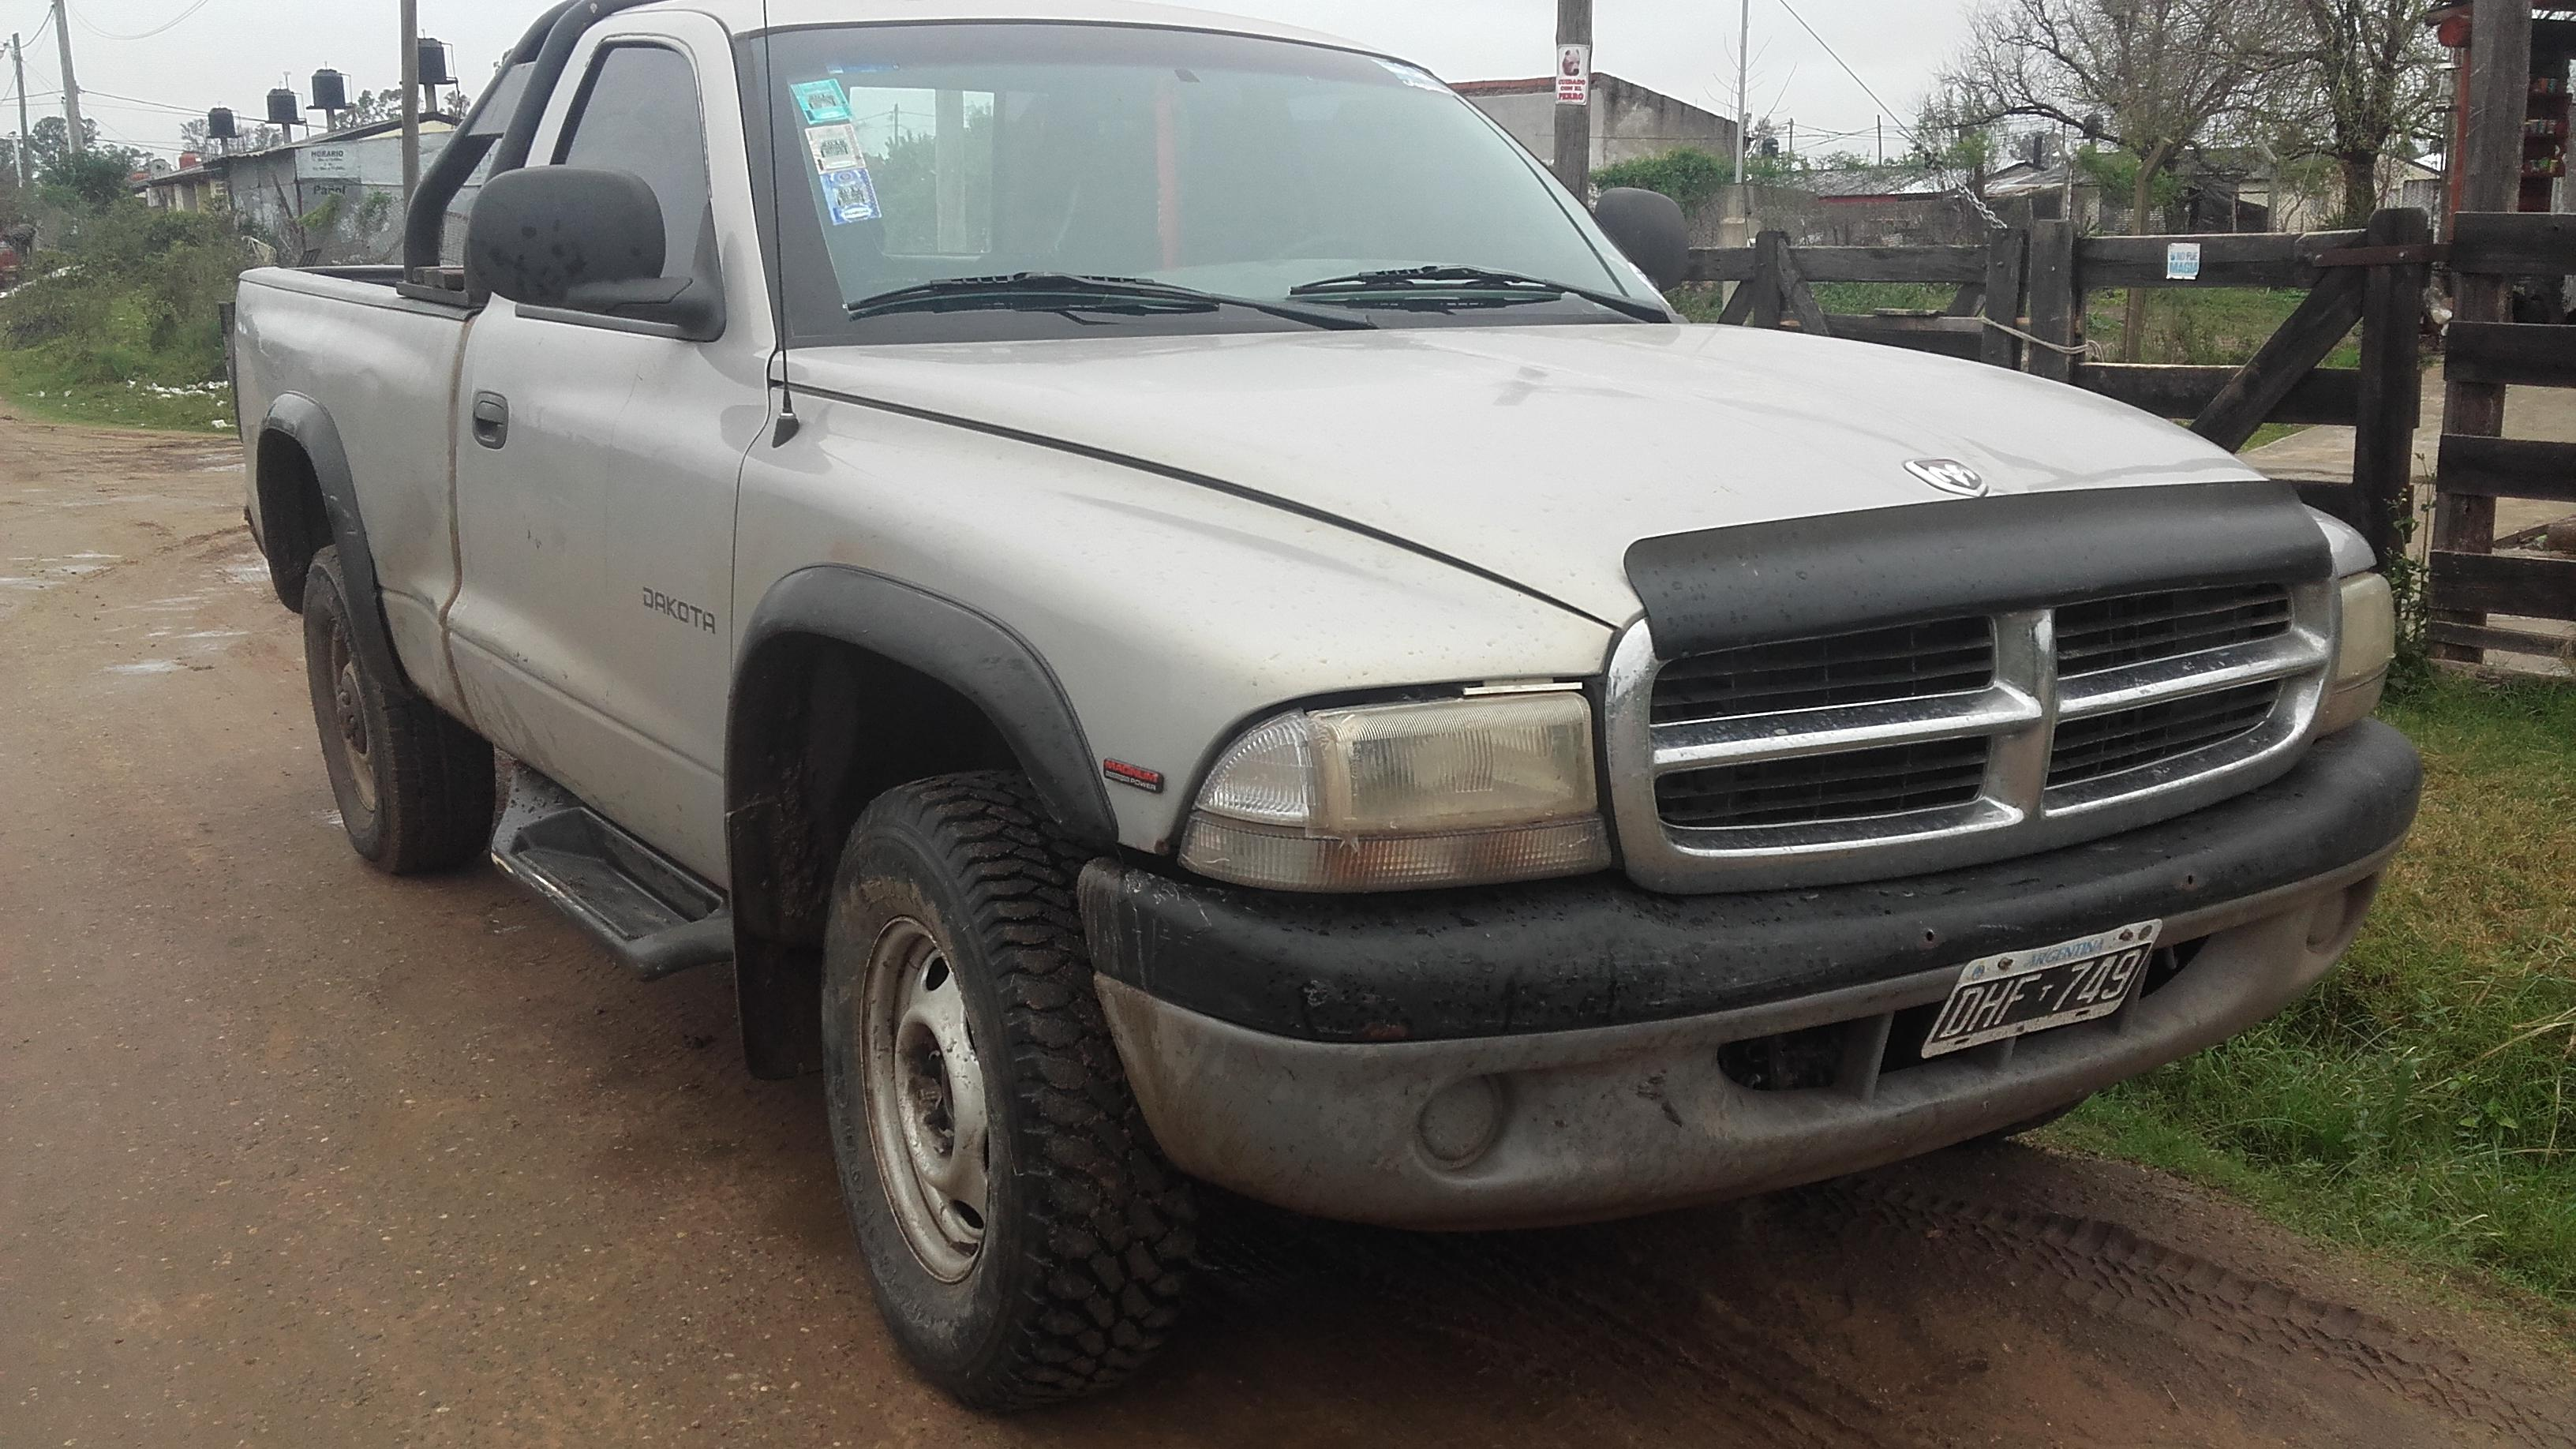 Vendo Camioneta Dodge Dakota 2000